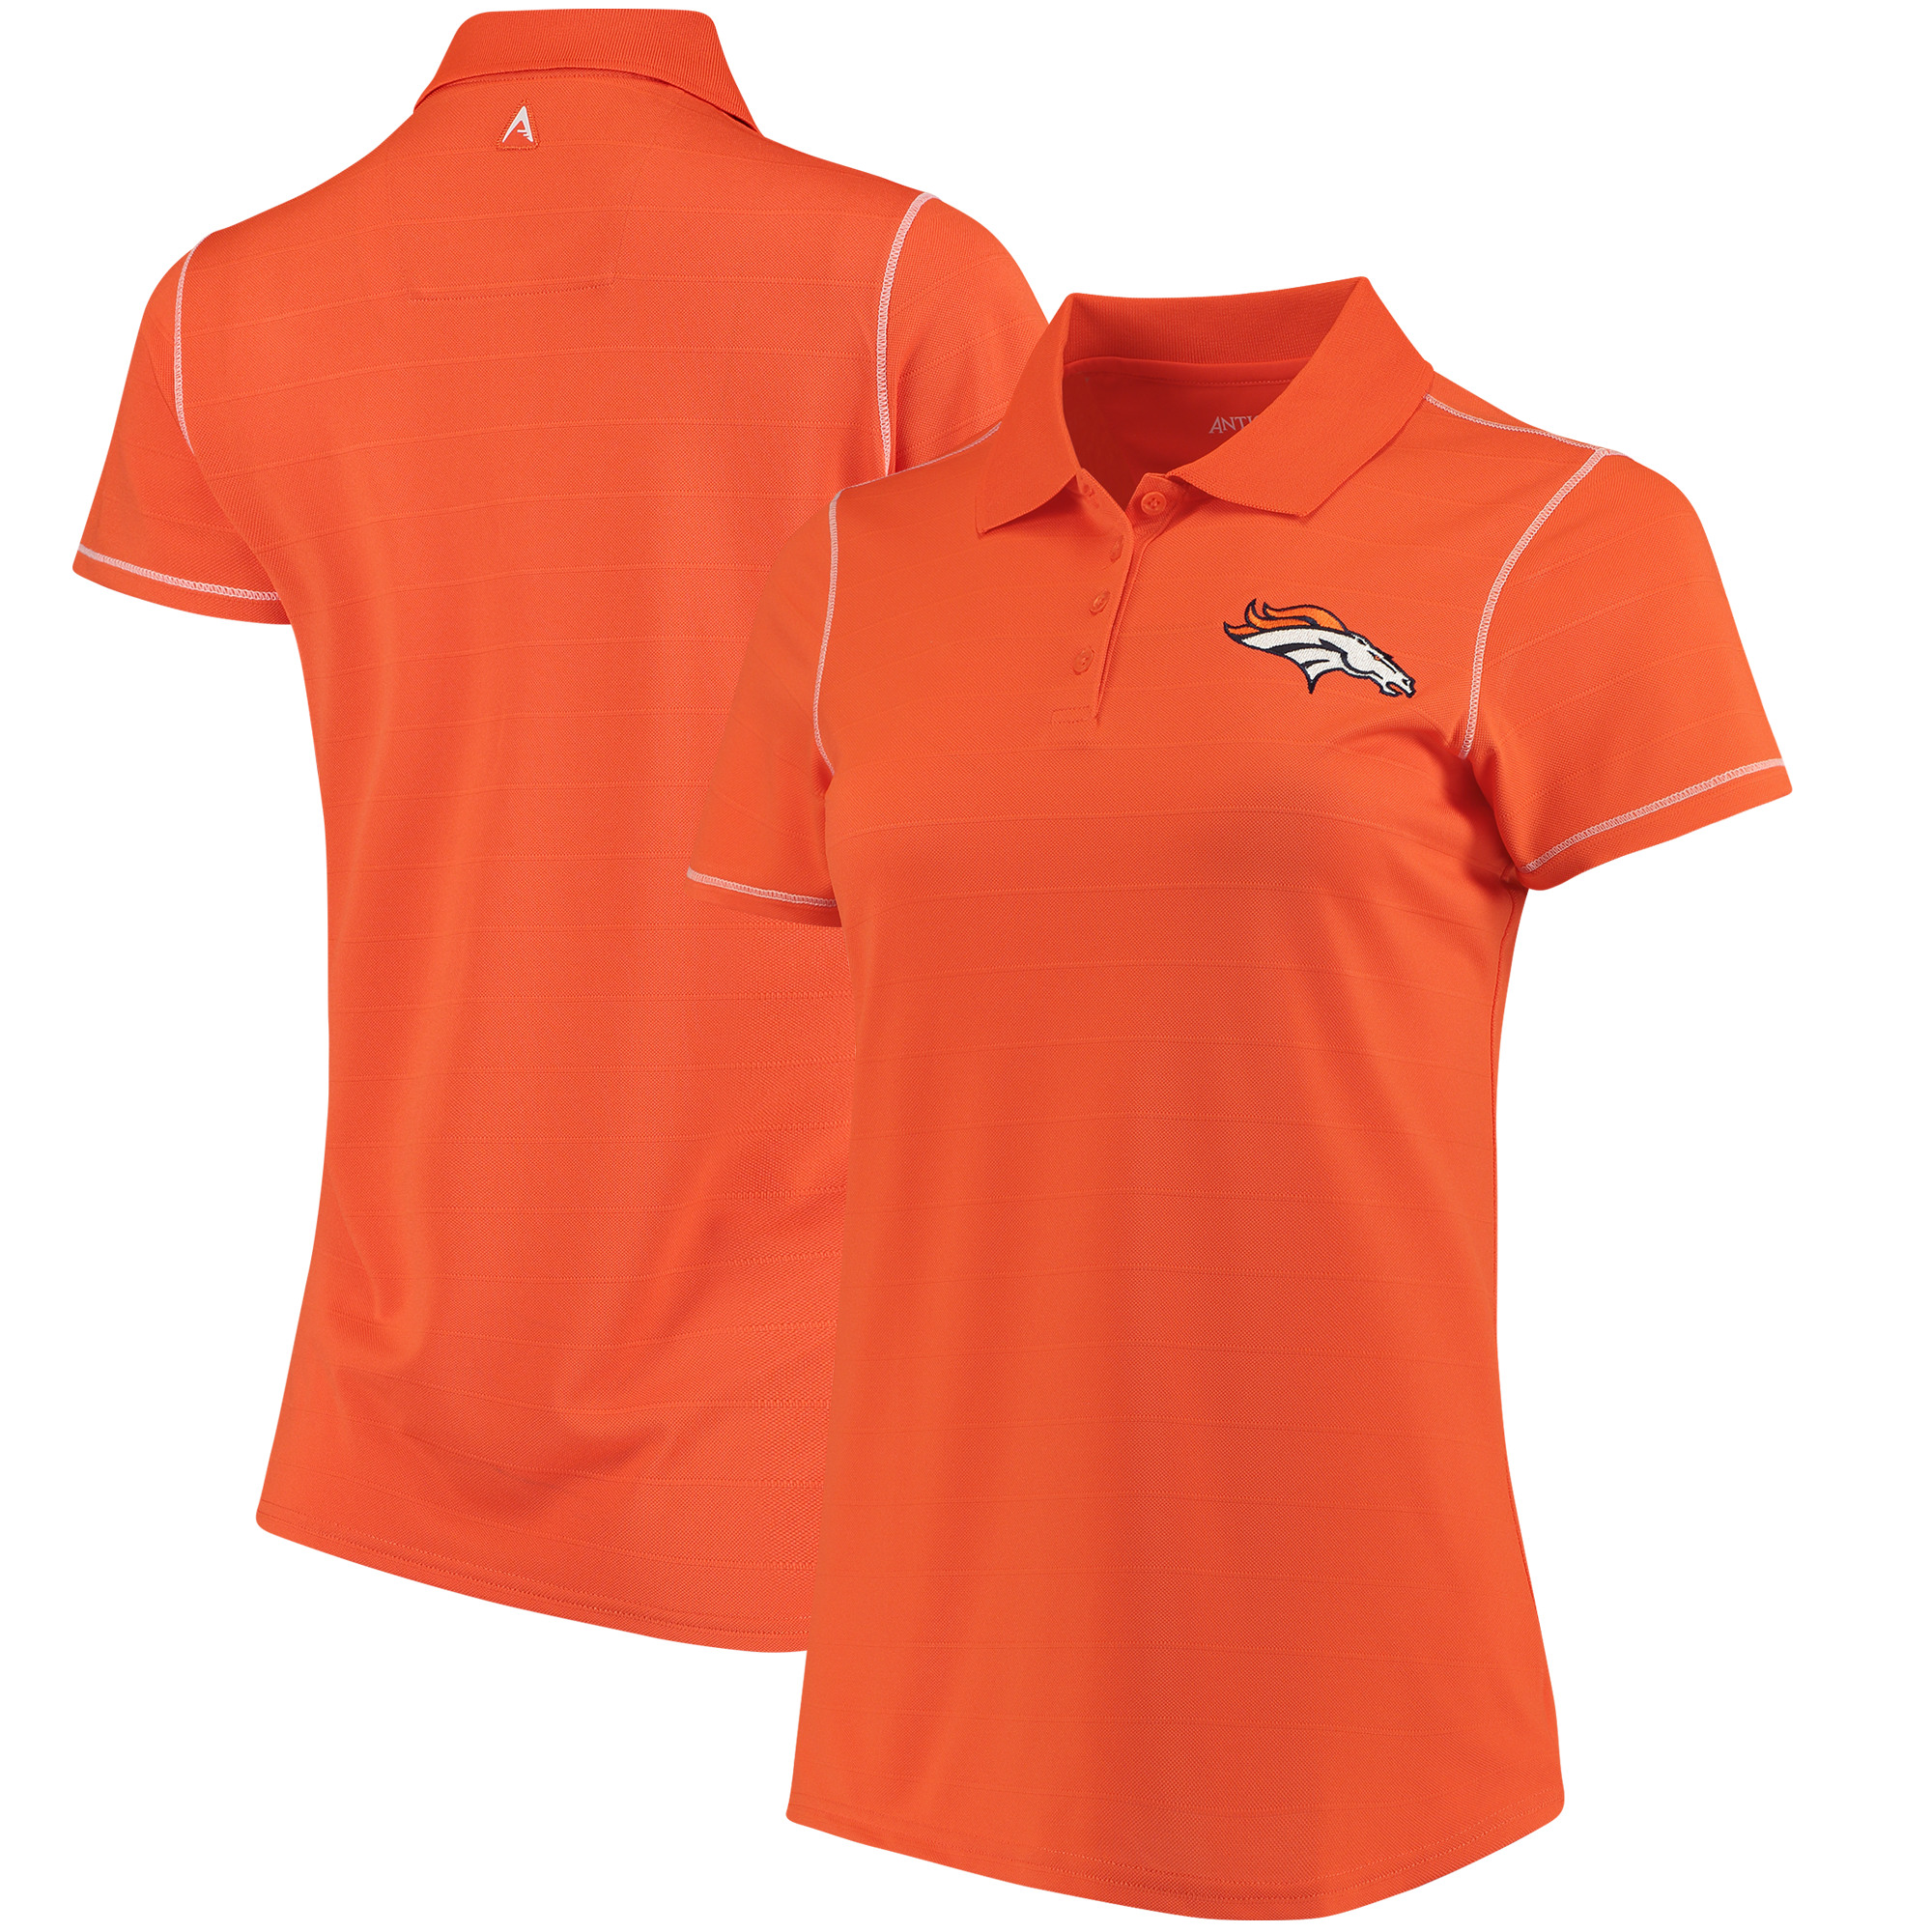 Denver Broncos Antigua Women's Icon Polo - Orange - M